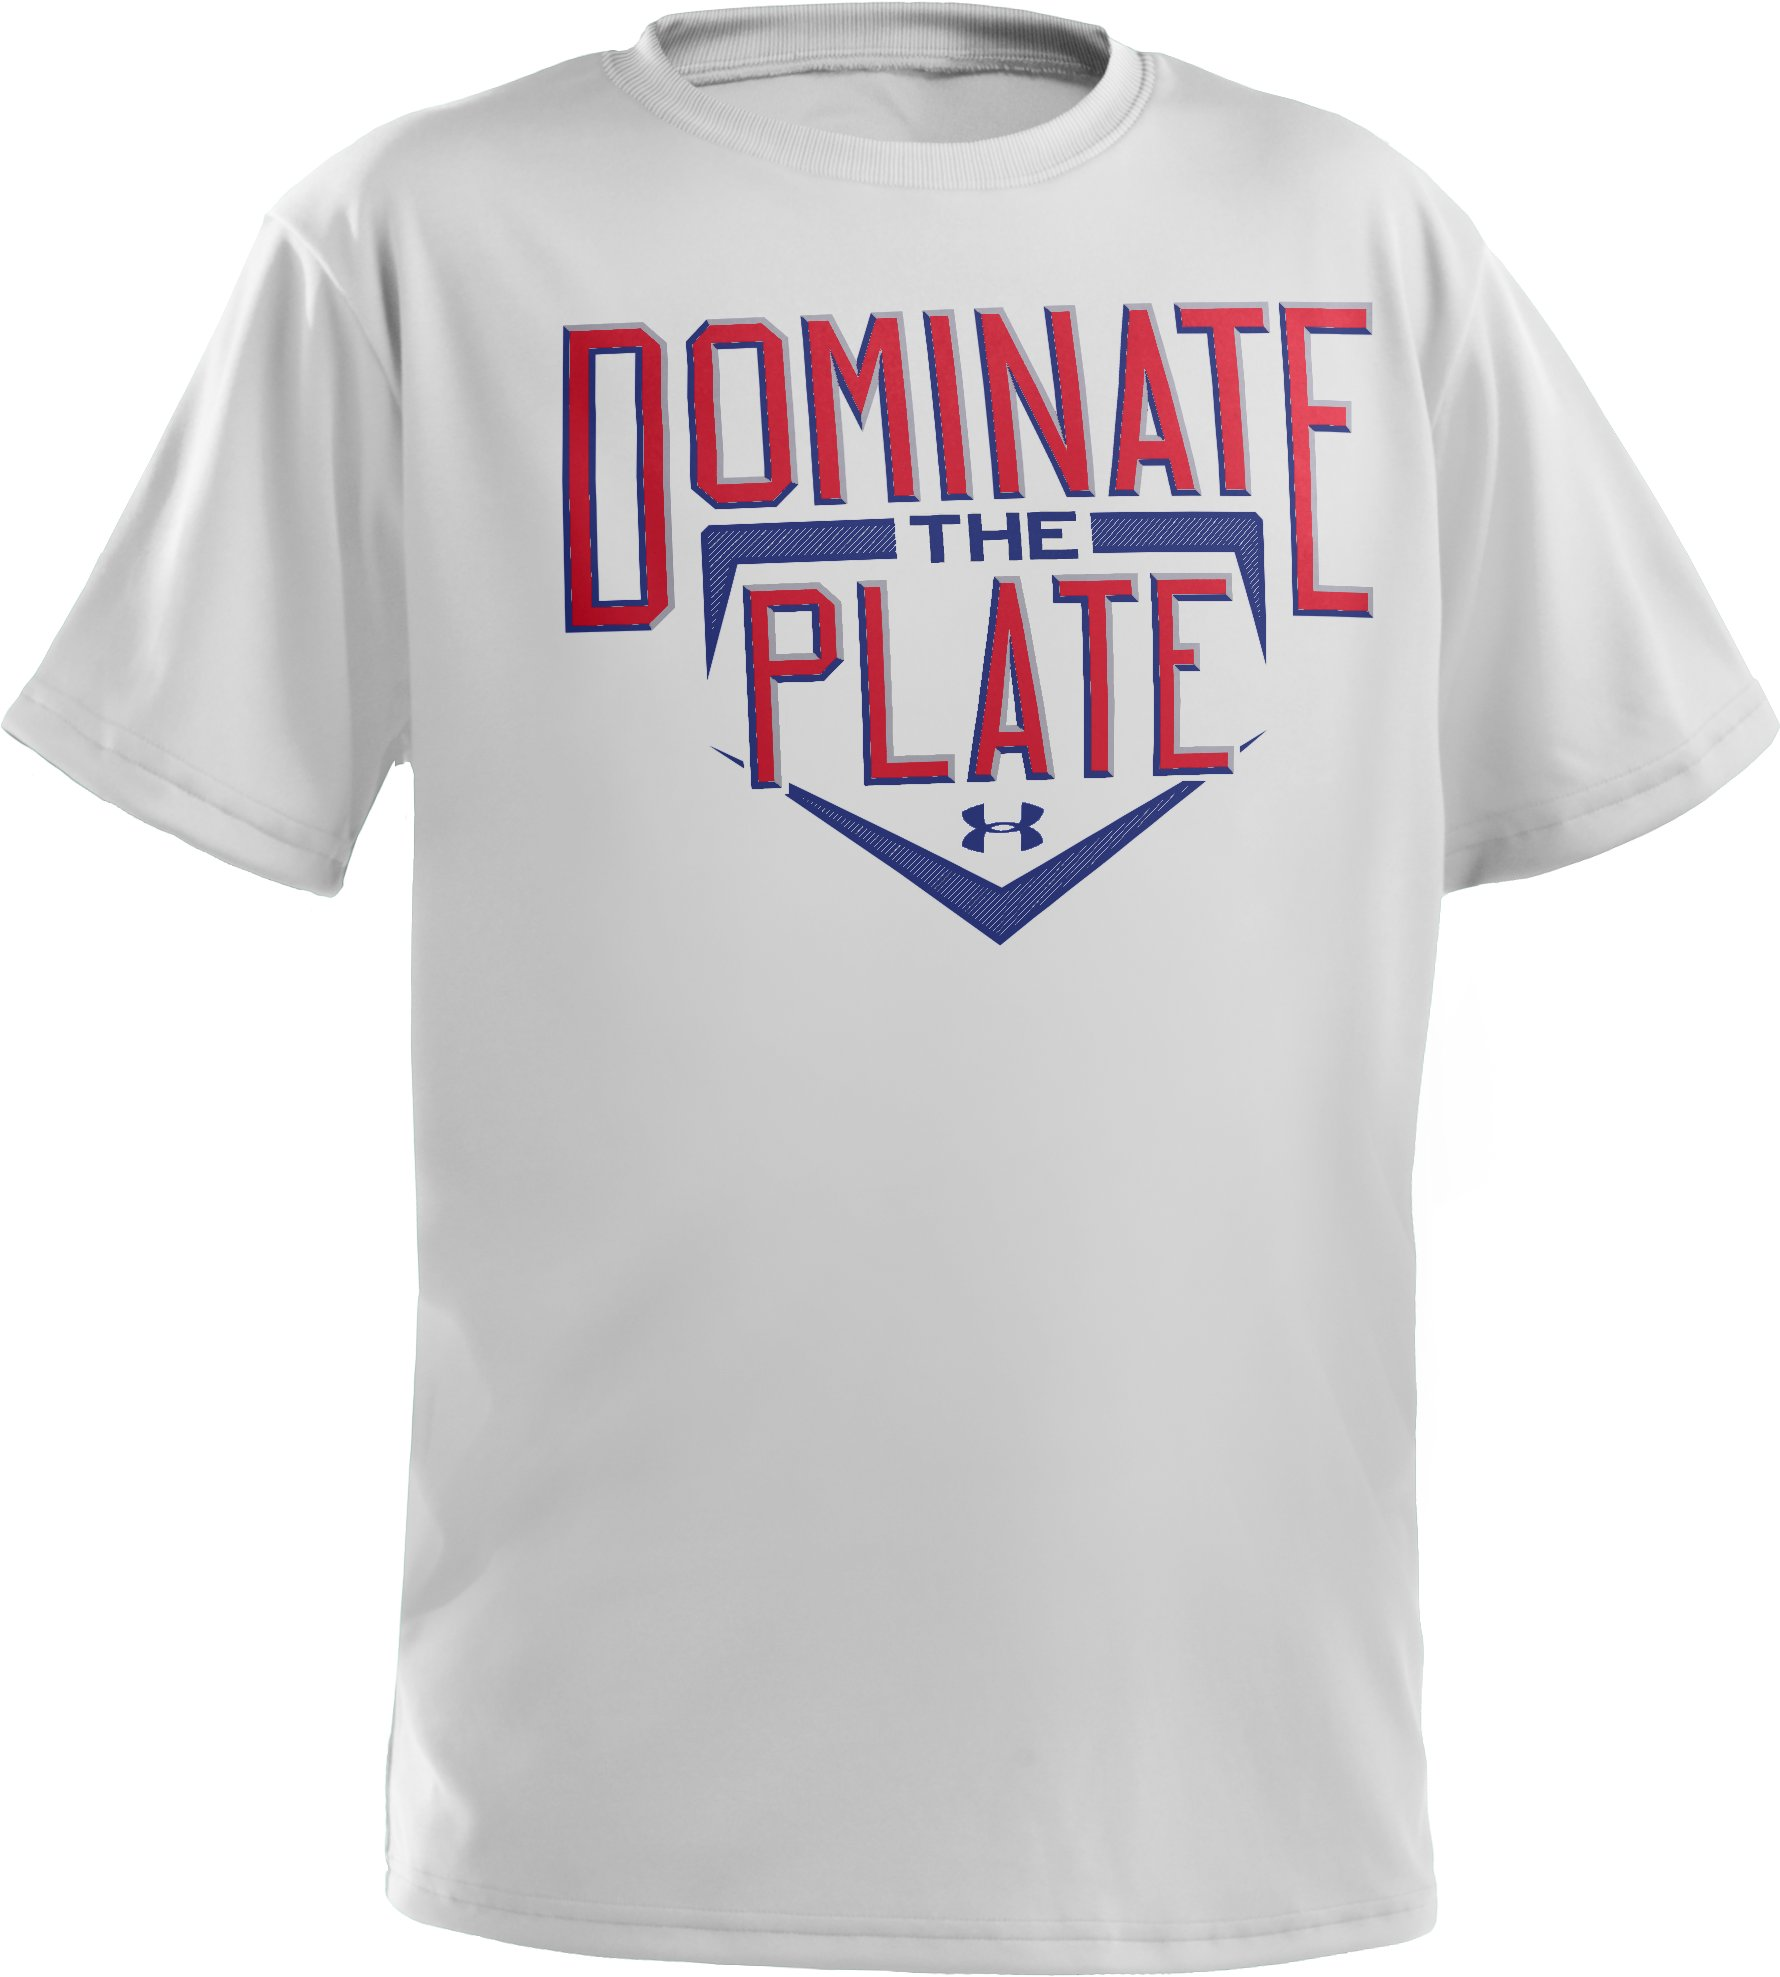 Boys' UA Dominate The Plate T-Shirt, White